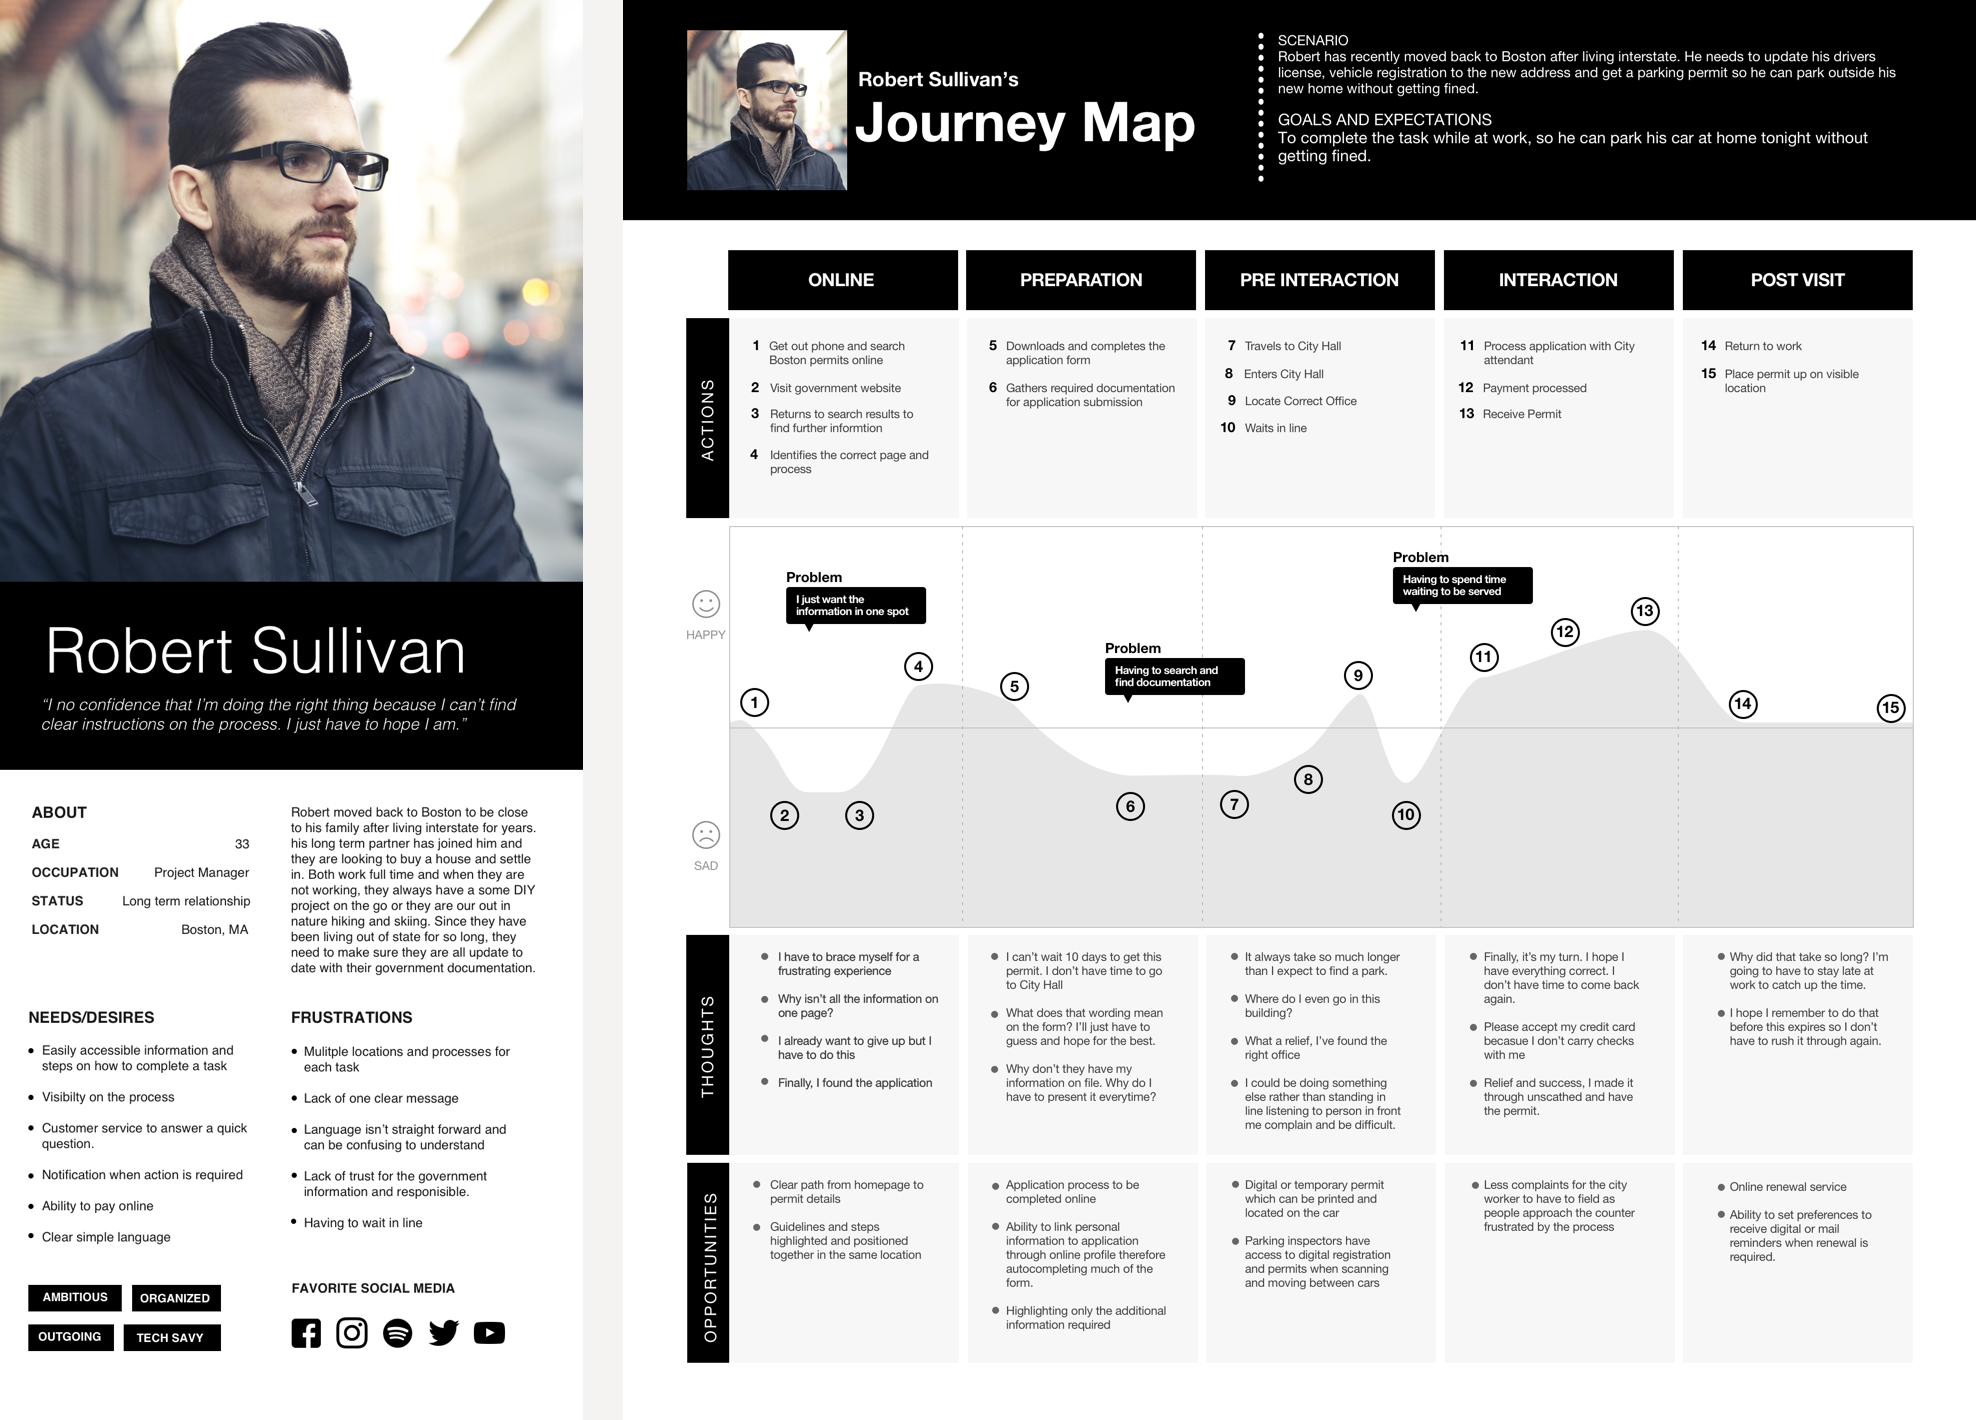 A primary persona was created from the empathy research, which informed a journey map of applying for a certificate.